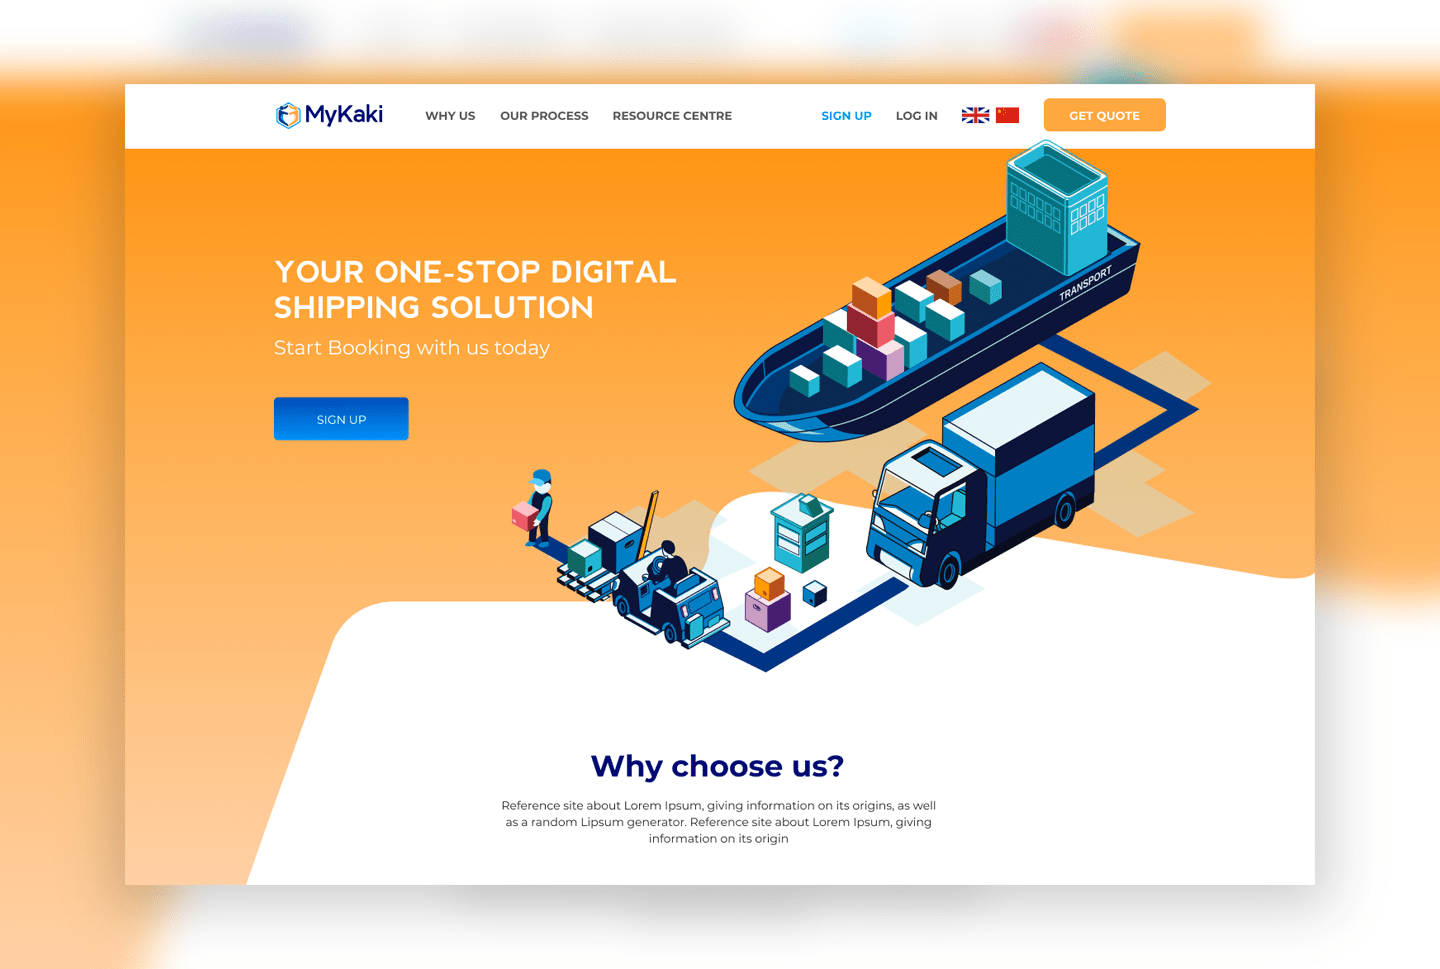 Mykaki Website